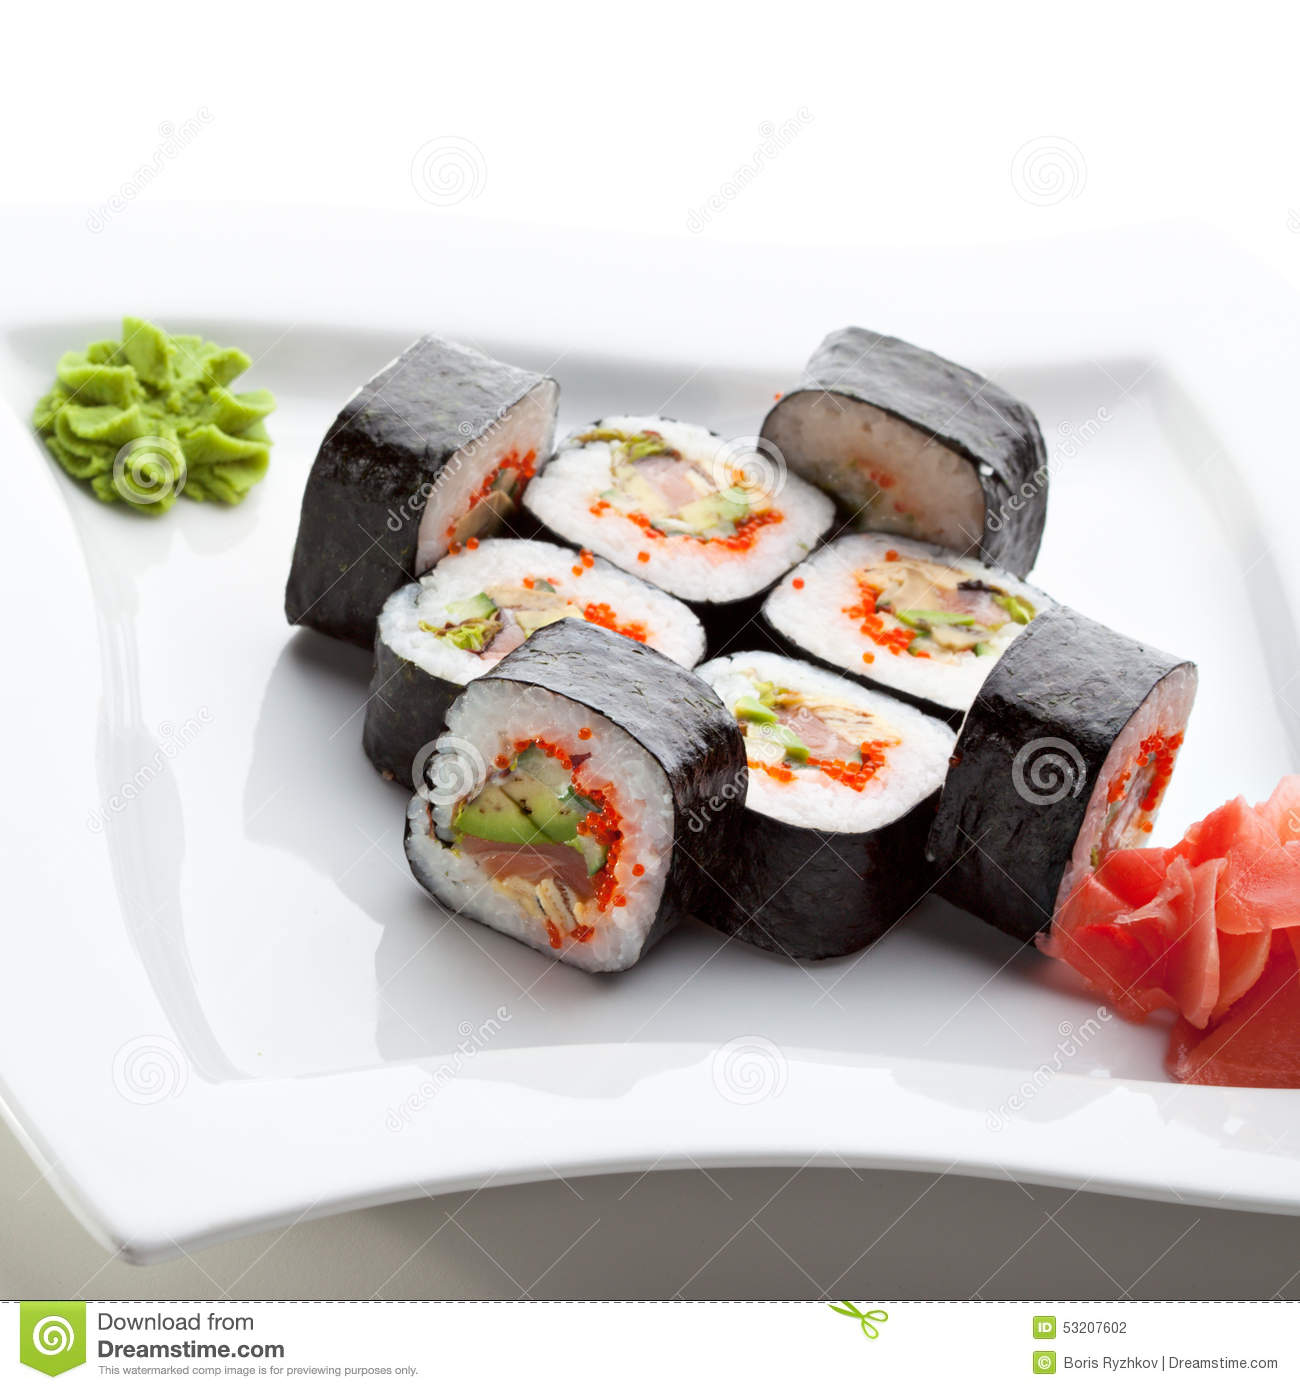 Sushi Roll Stock Photo - Image: 53207602